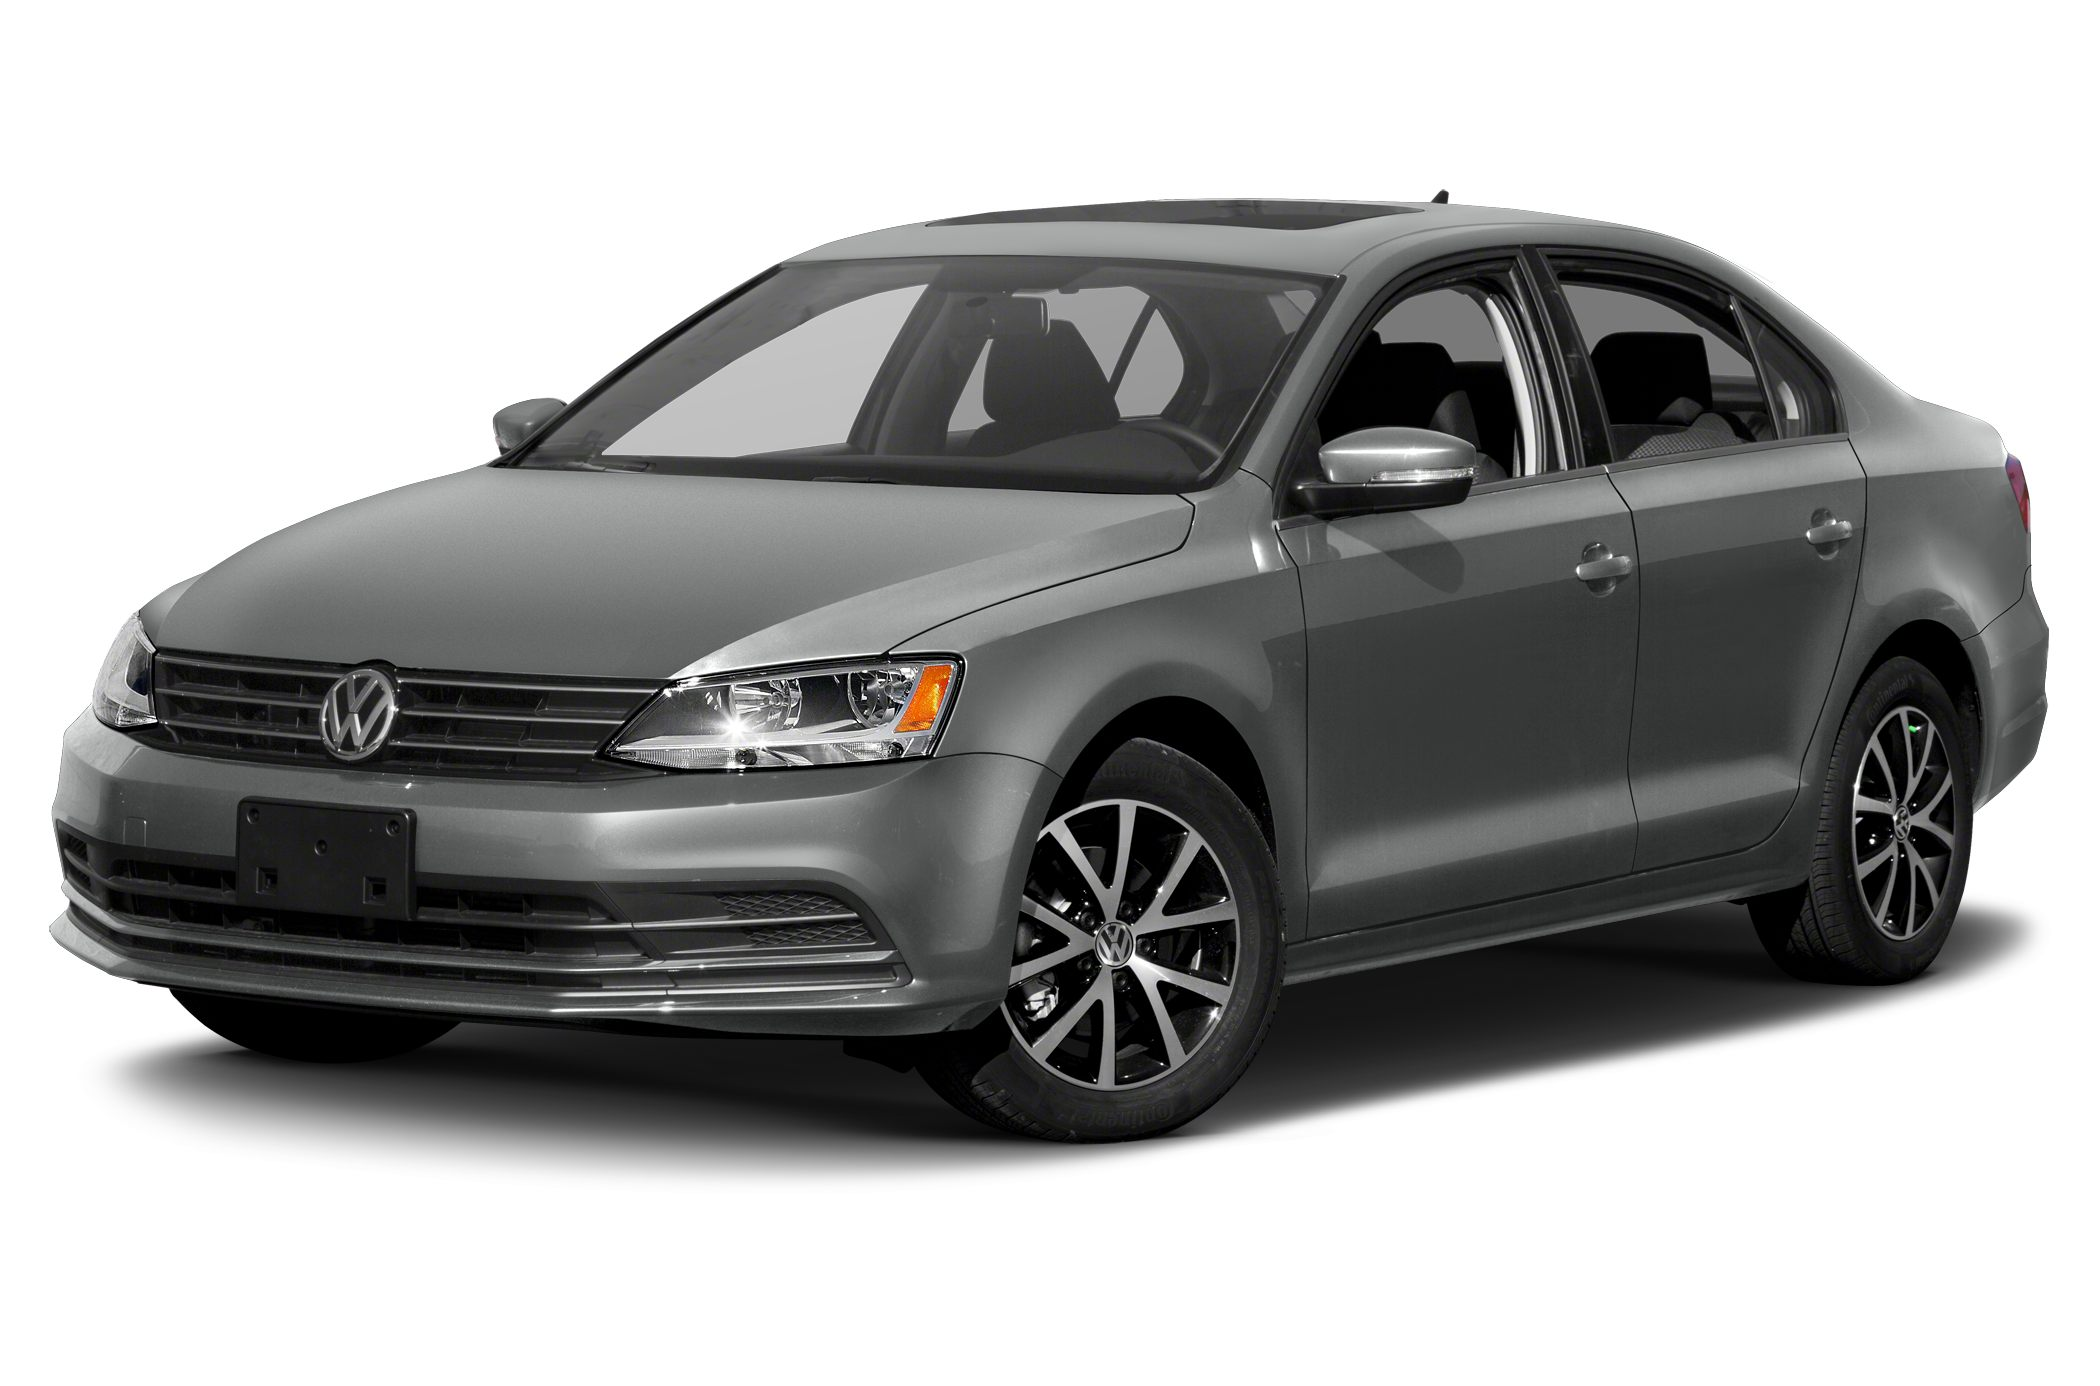 2015 Volkswagen Jetta 20 S This 2015 Volkswagen Jetta Sedan 4dr 4d Sedan S Auto features a 20L 4